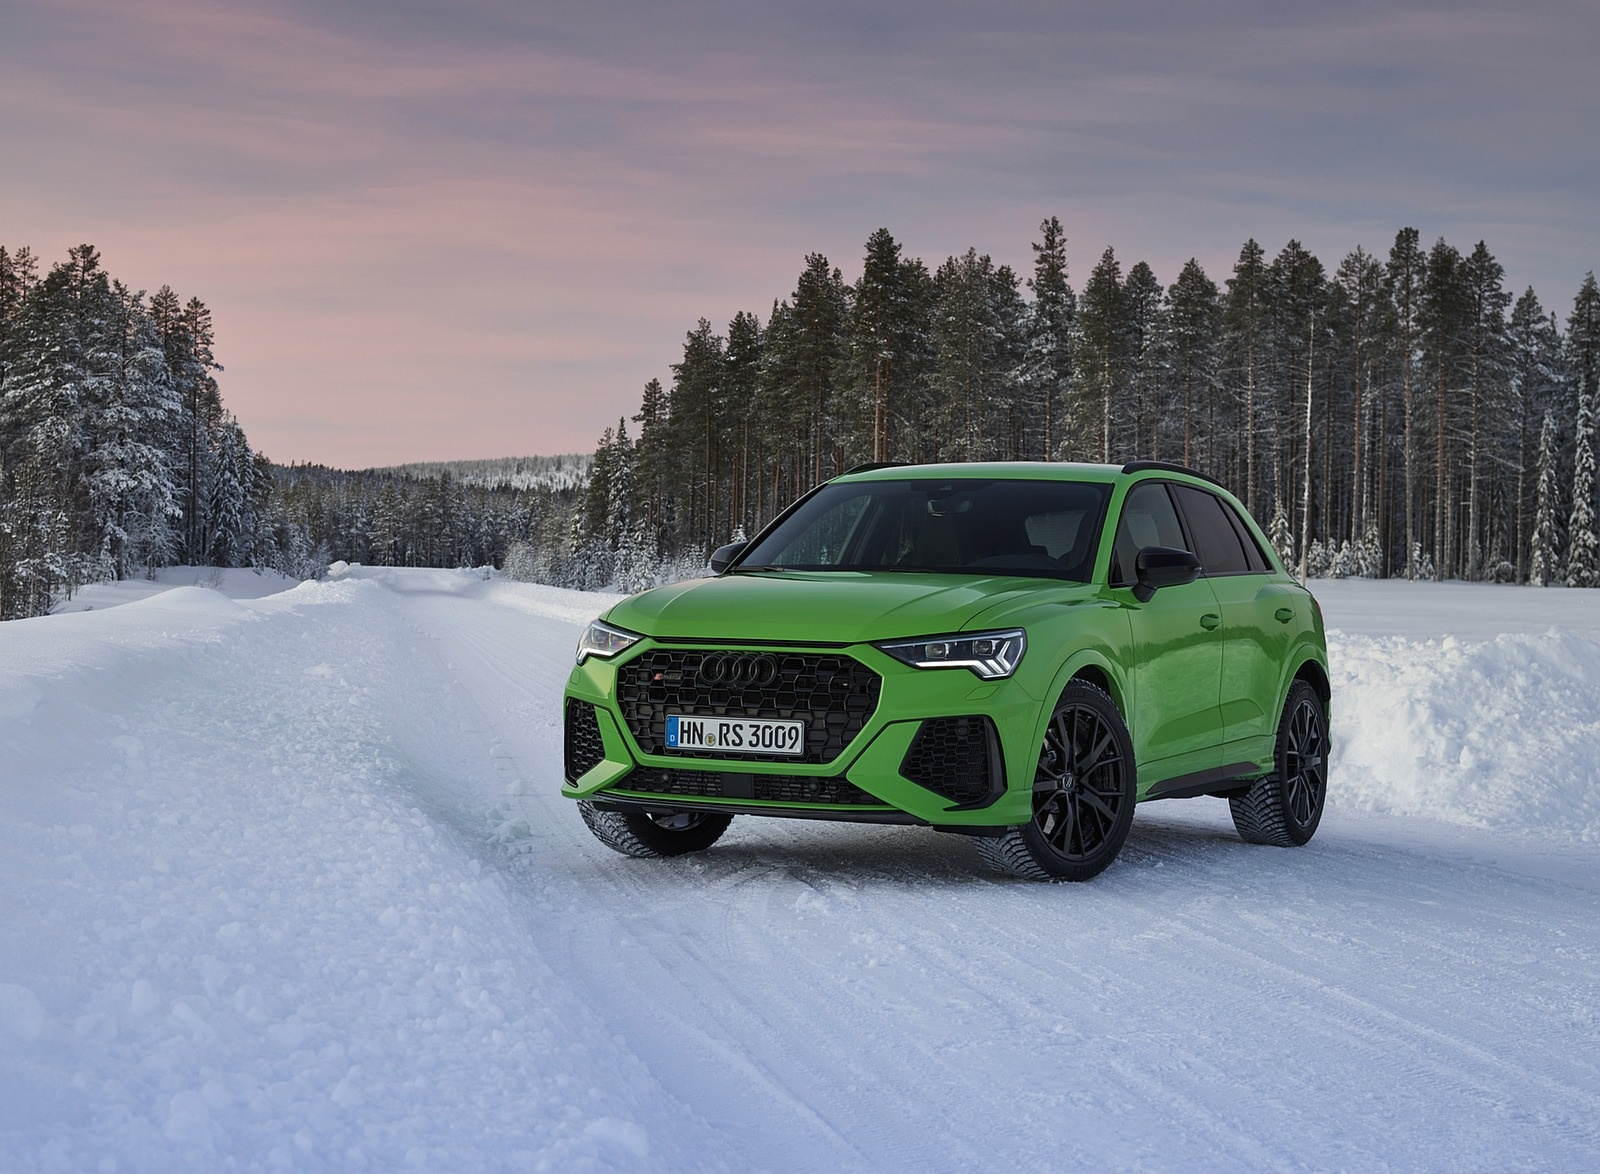 2020 Audi RS Q3 (Color: Kyalami Green) Front Three-Quarter Wallpapers #32 of 116